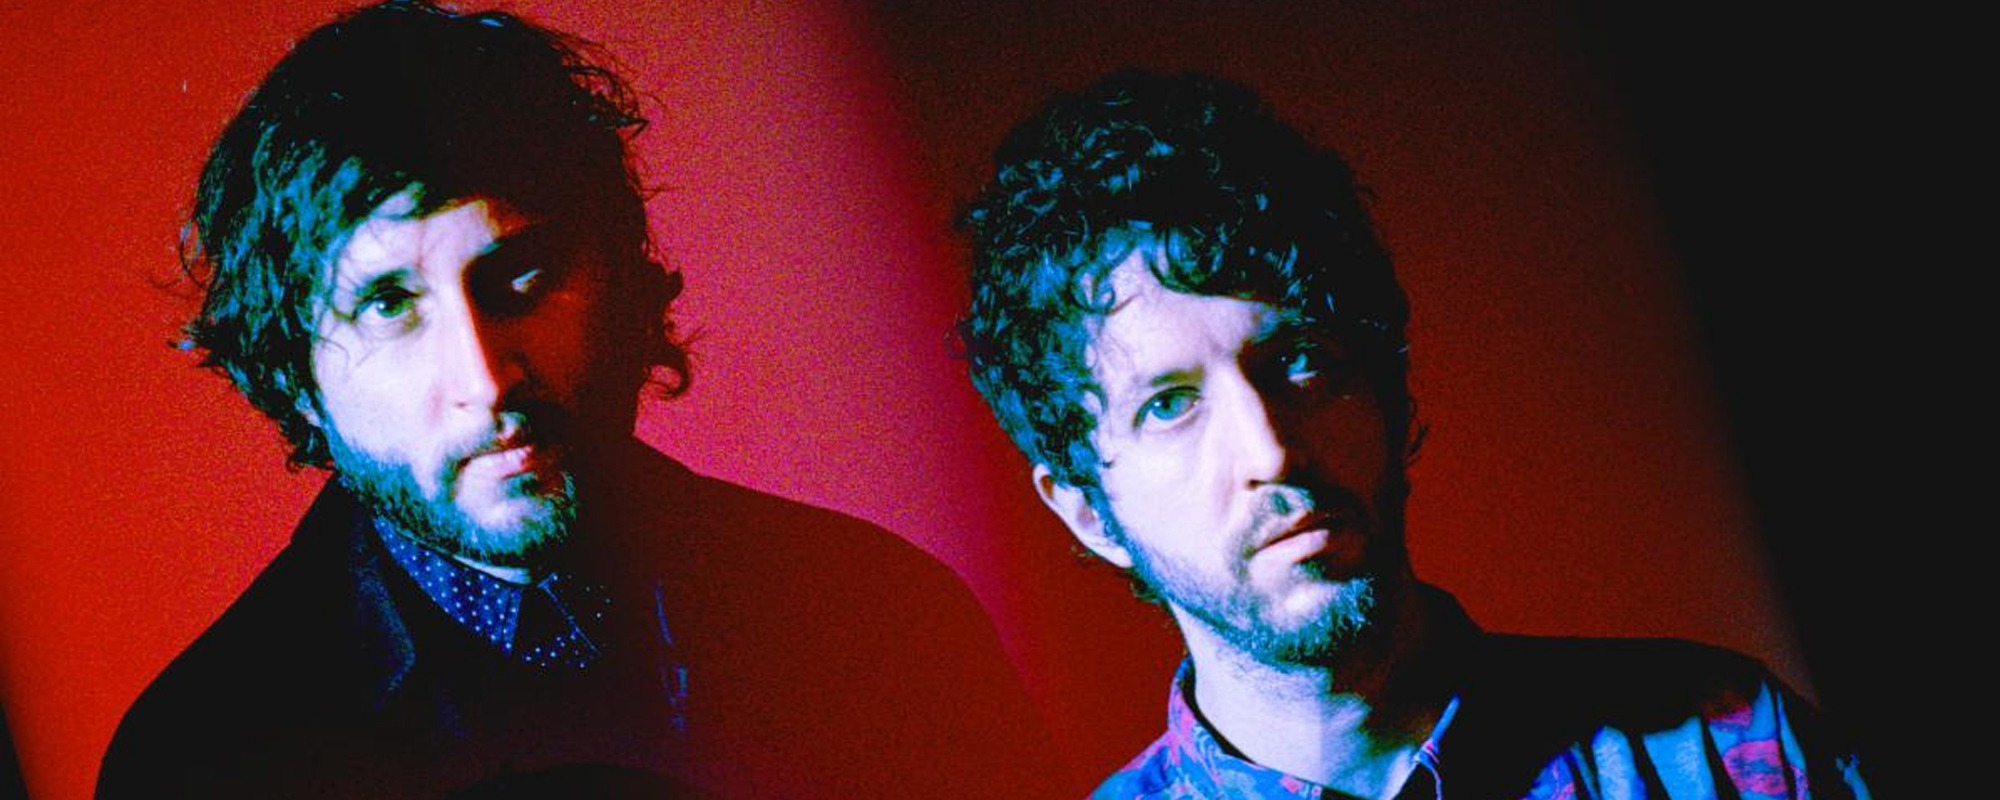 Small Black's Personal Relationships Inspire New Album 'Cheap Dreams'